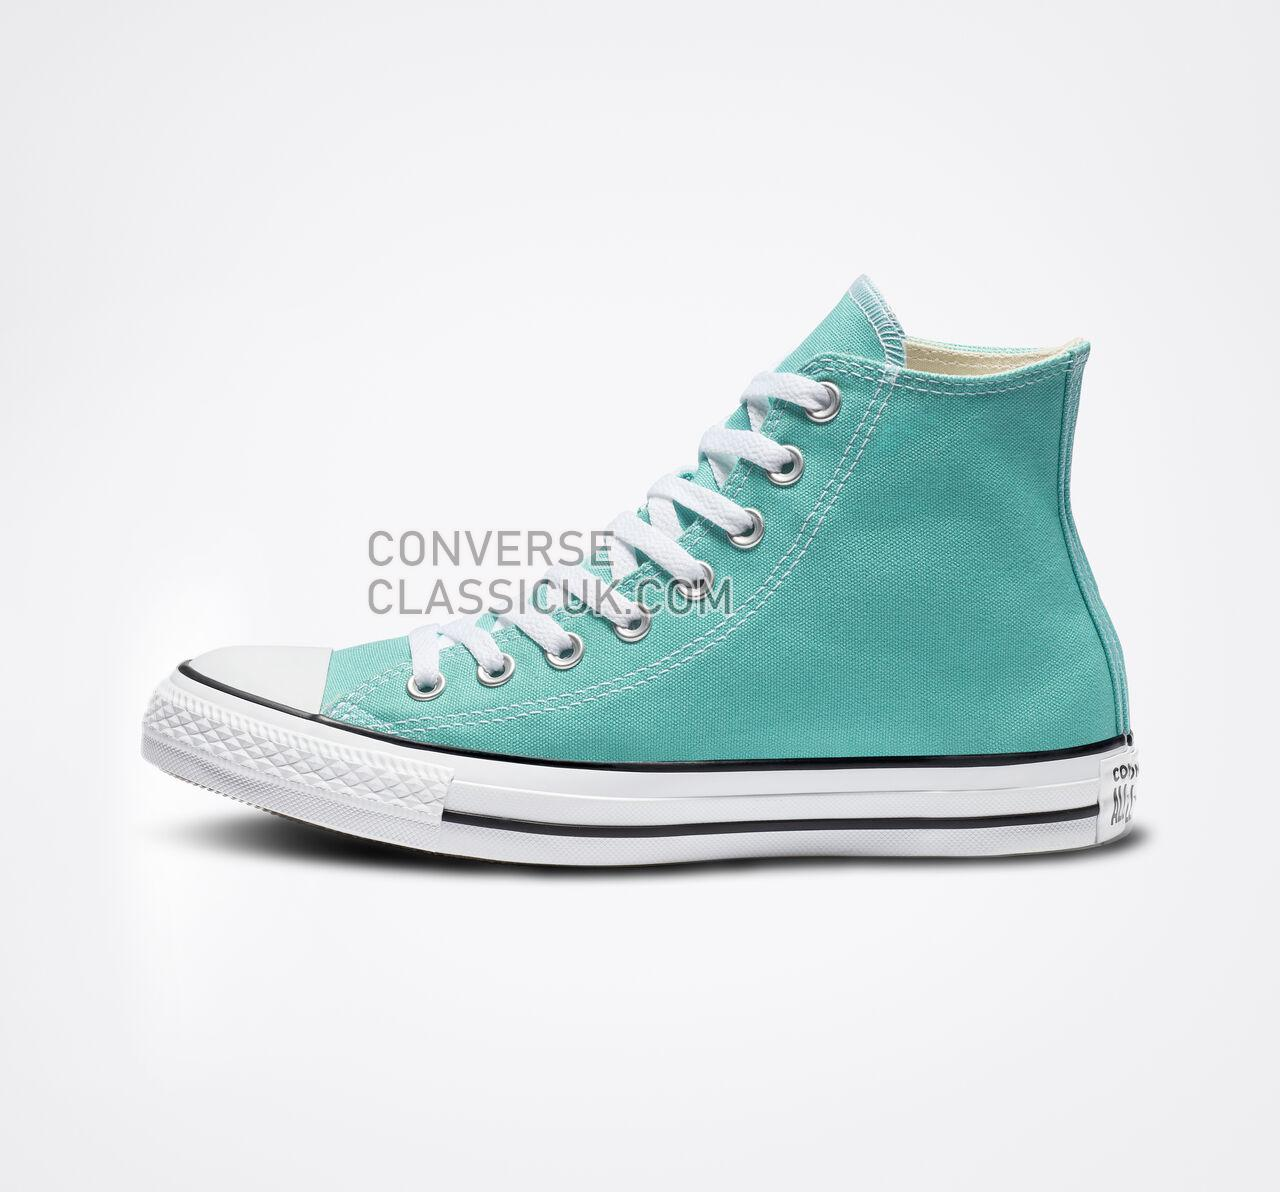 Converse Chuck Taylor All Star Seasonal Color High Top Mens Womens Unisex 161416F Pure Teal Shoes